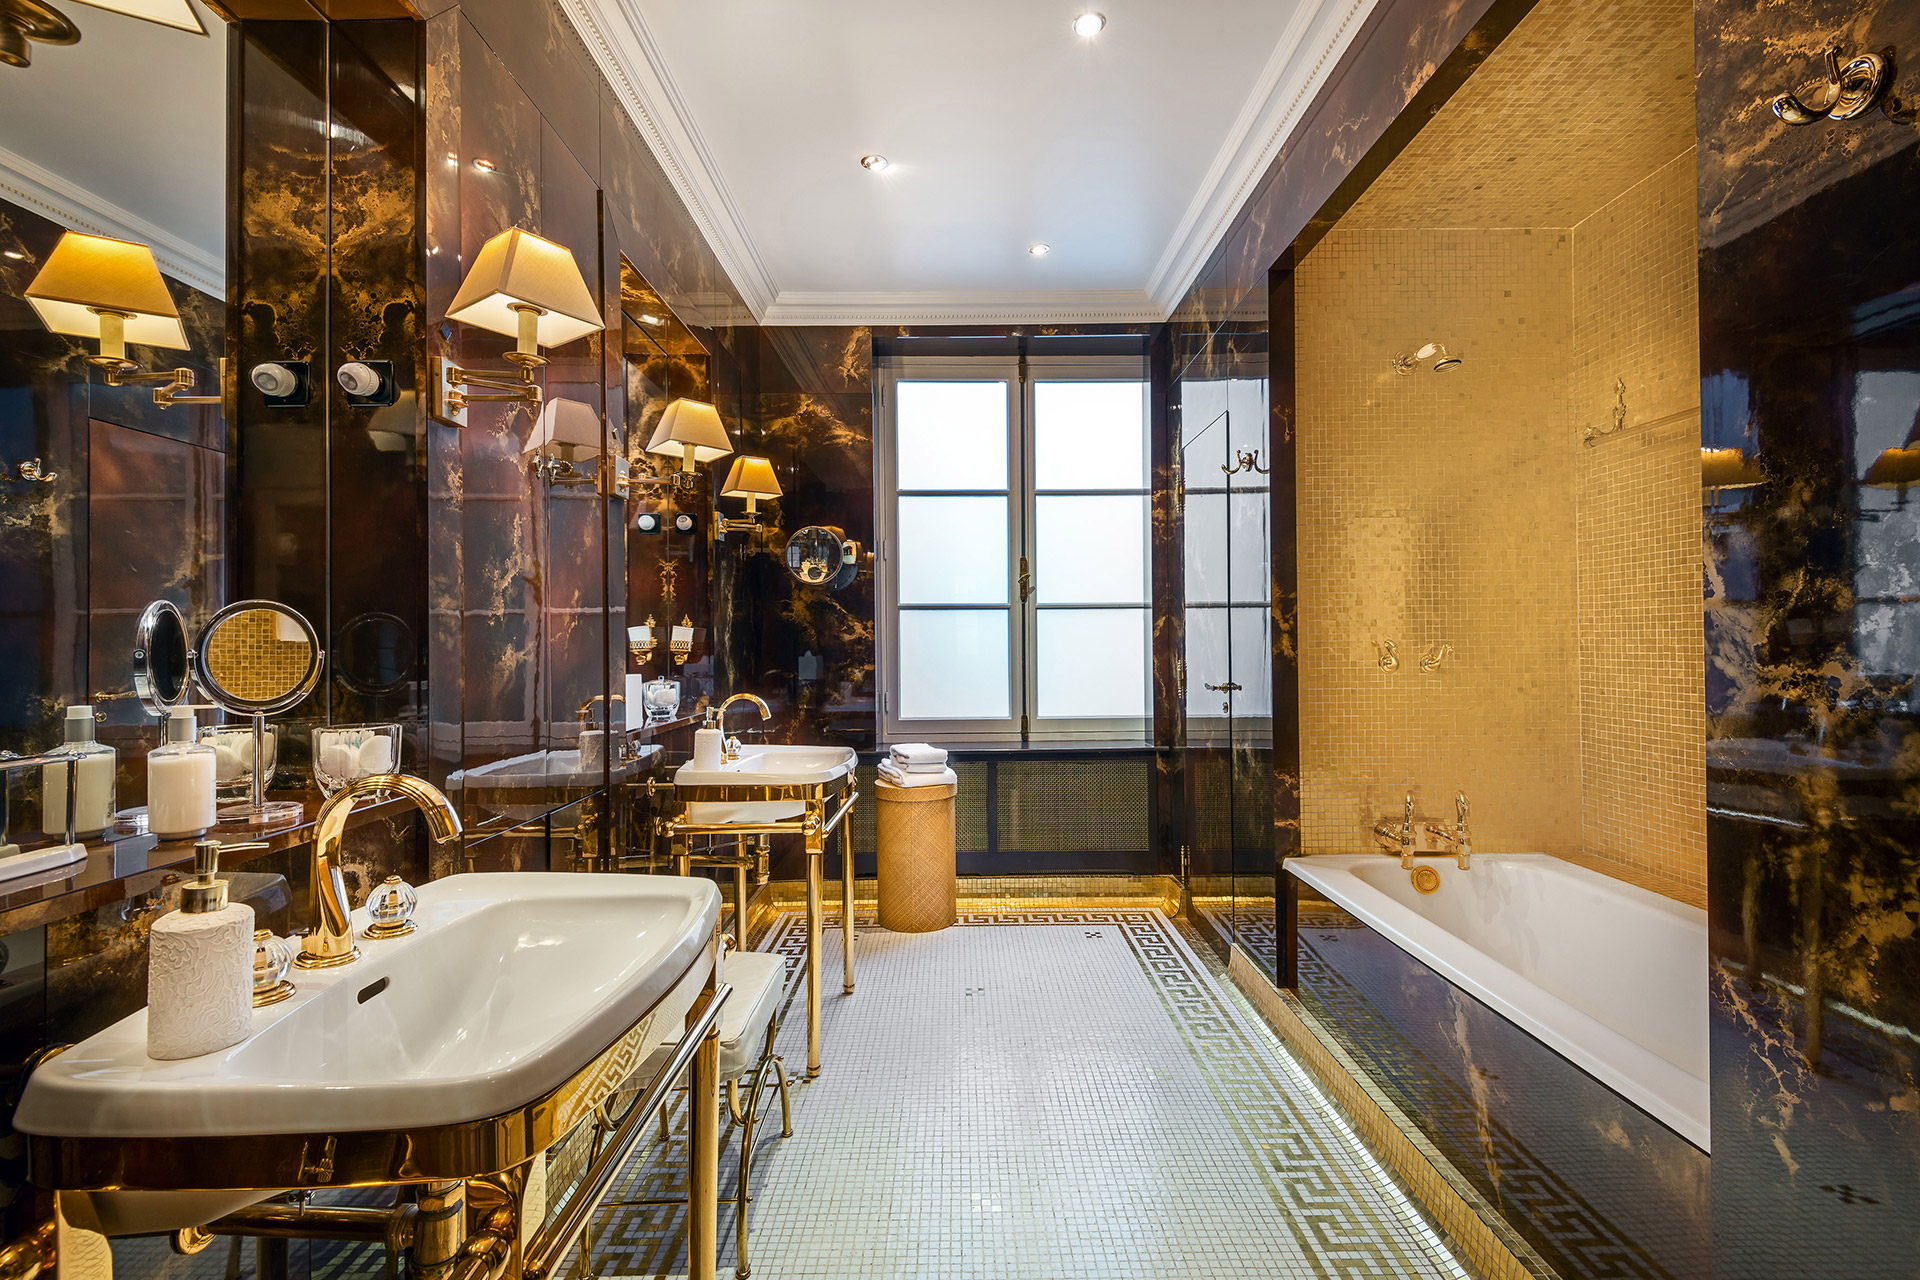 A bathroom for a King in the Chopine vacation rental offered by Paris Perfect